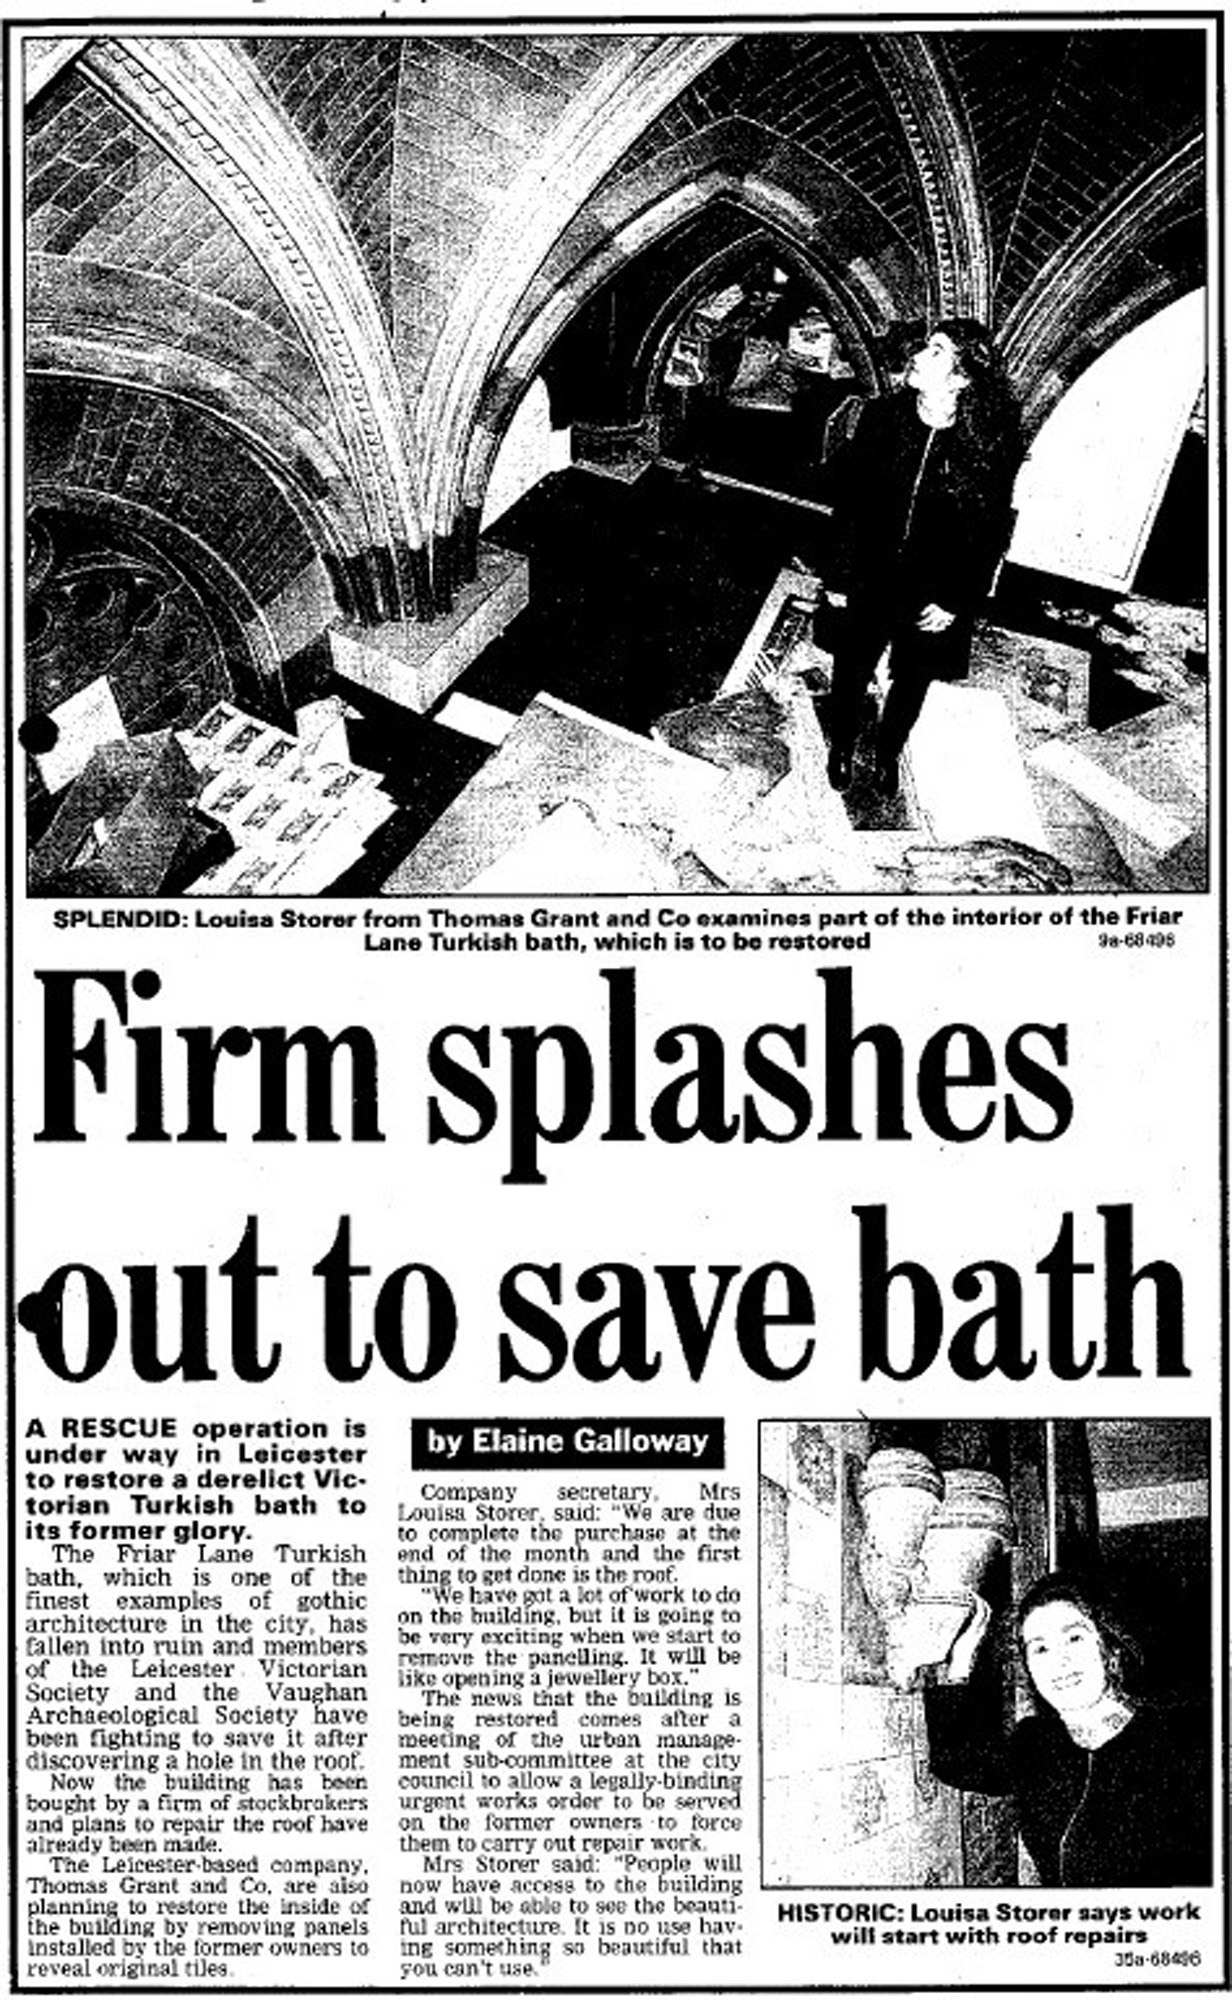 An article from 1999 describing restoration plans for the Turkish Baths -